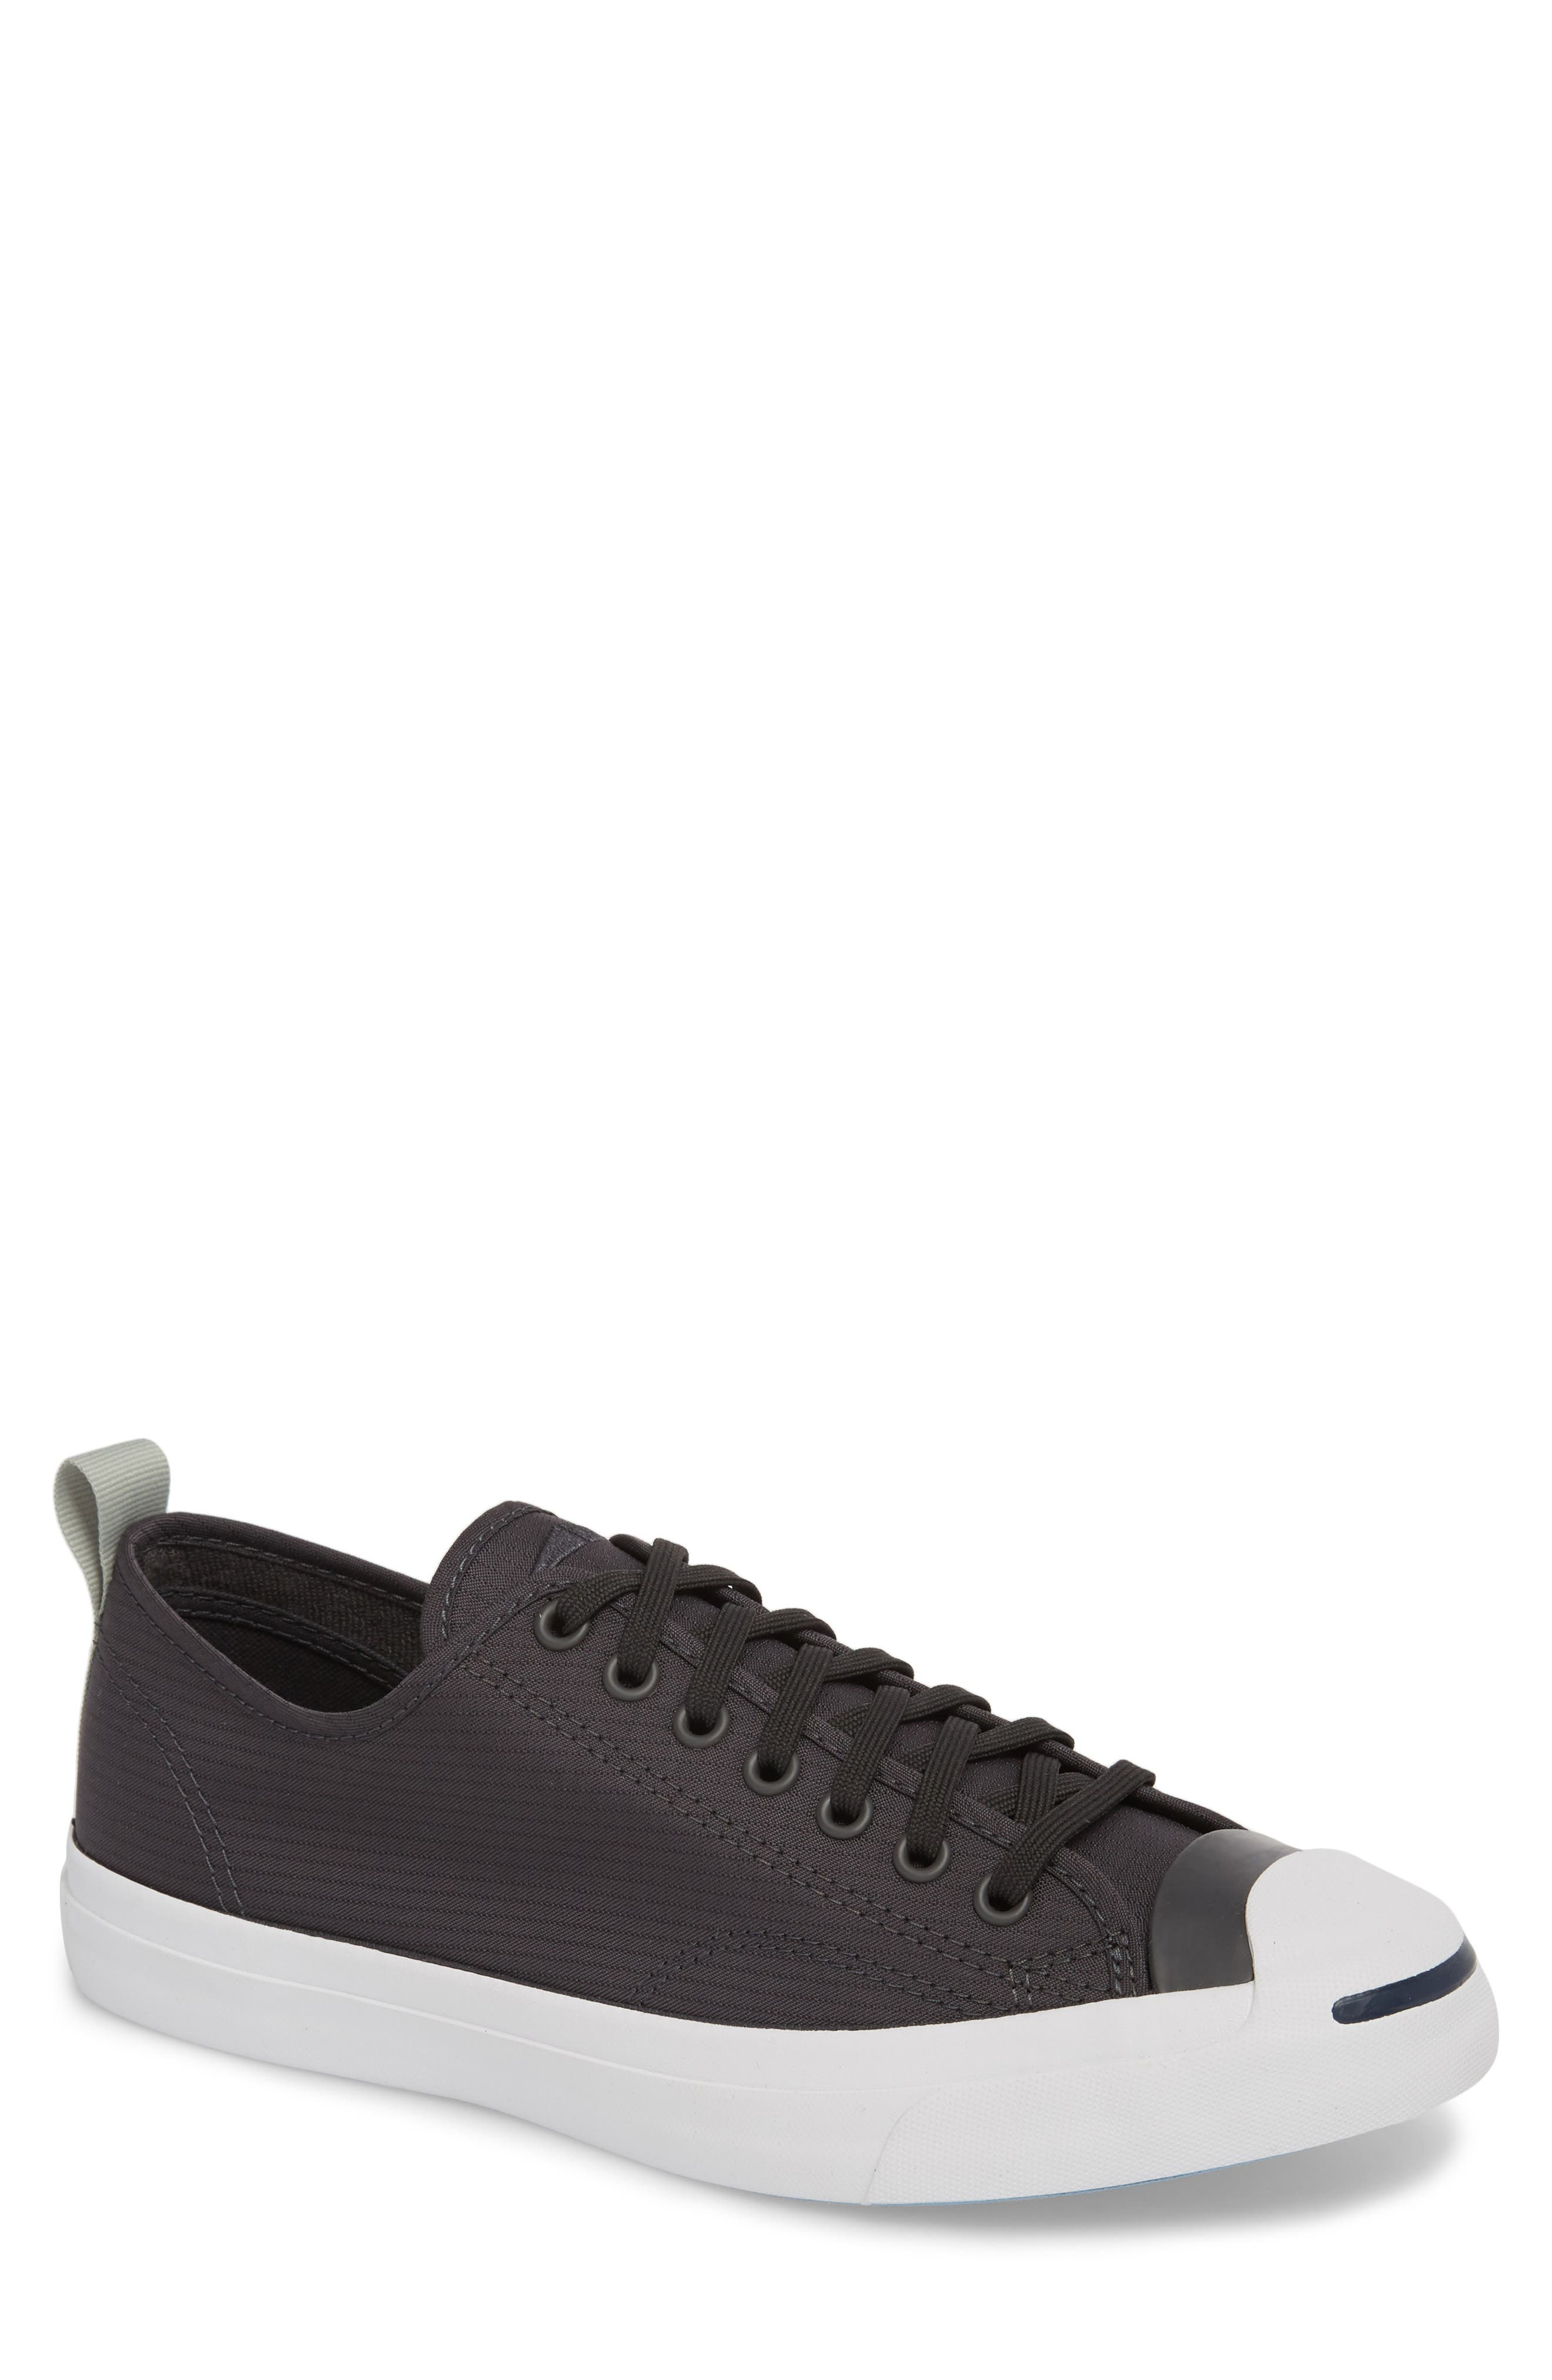 Jack Purcell Ripstop Sneaker,                         Main,                         color,